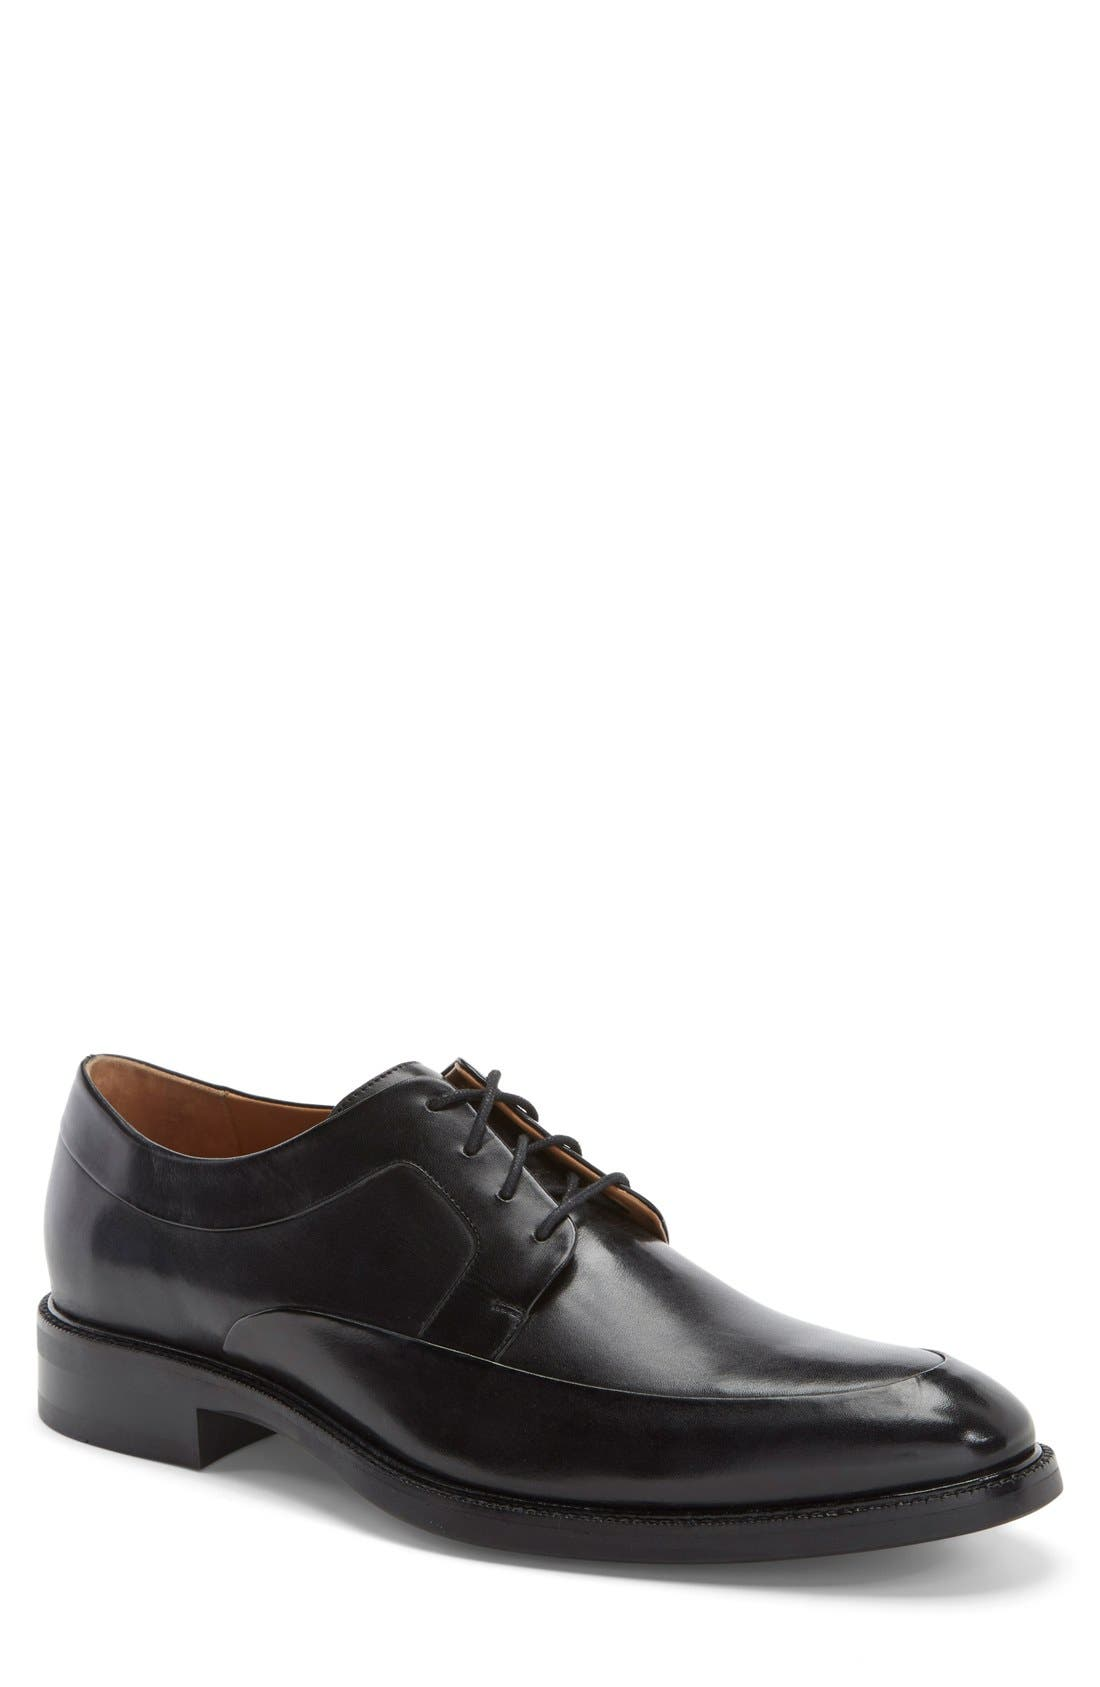 COLE HAAN, 'Warren' Apron Toe Derby, Main thumbnail 1, color, BLACK LEATHER